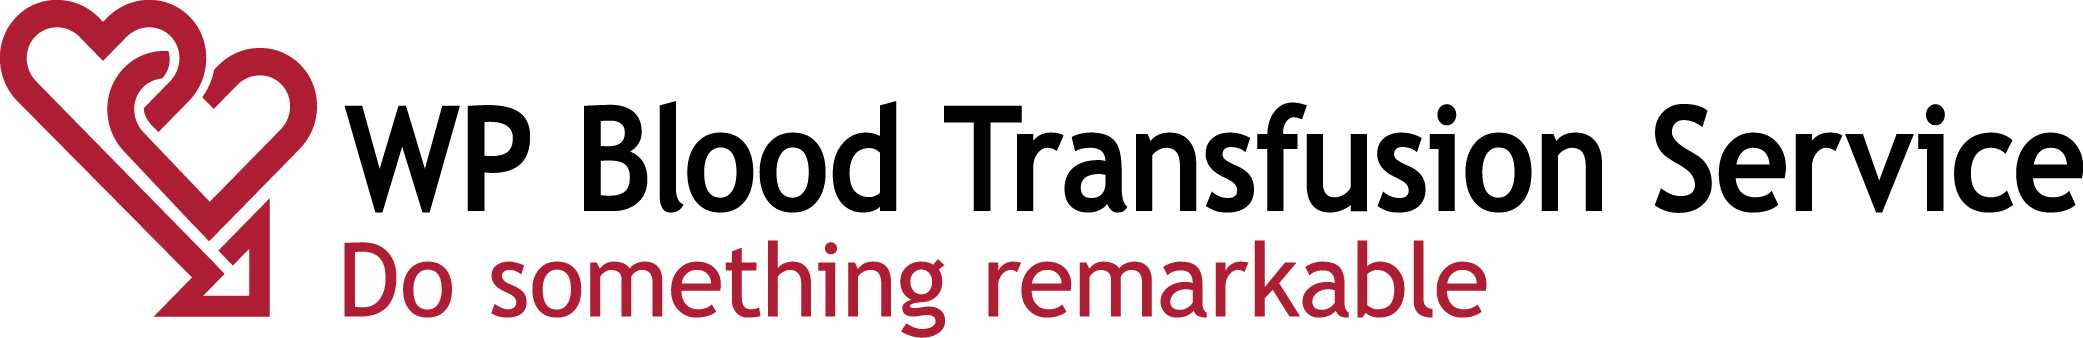 Western Province Blood Transfusion Service (WPBTS)